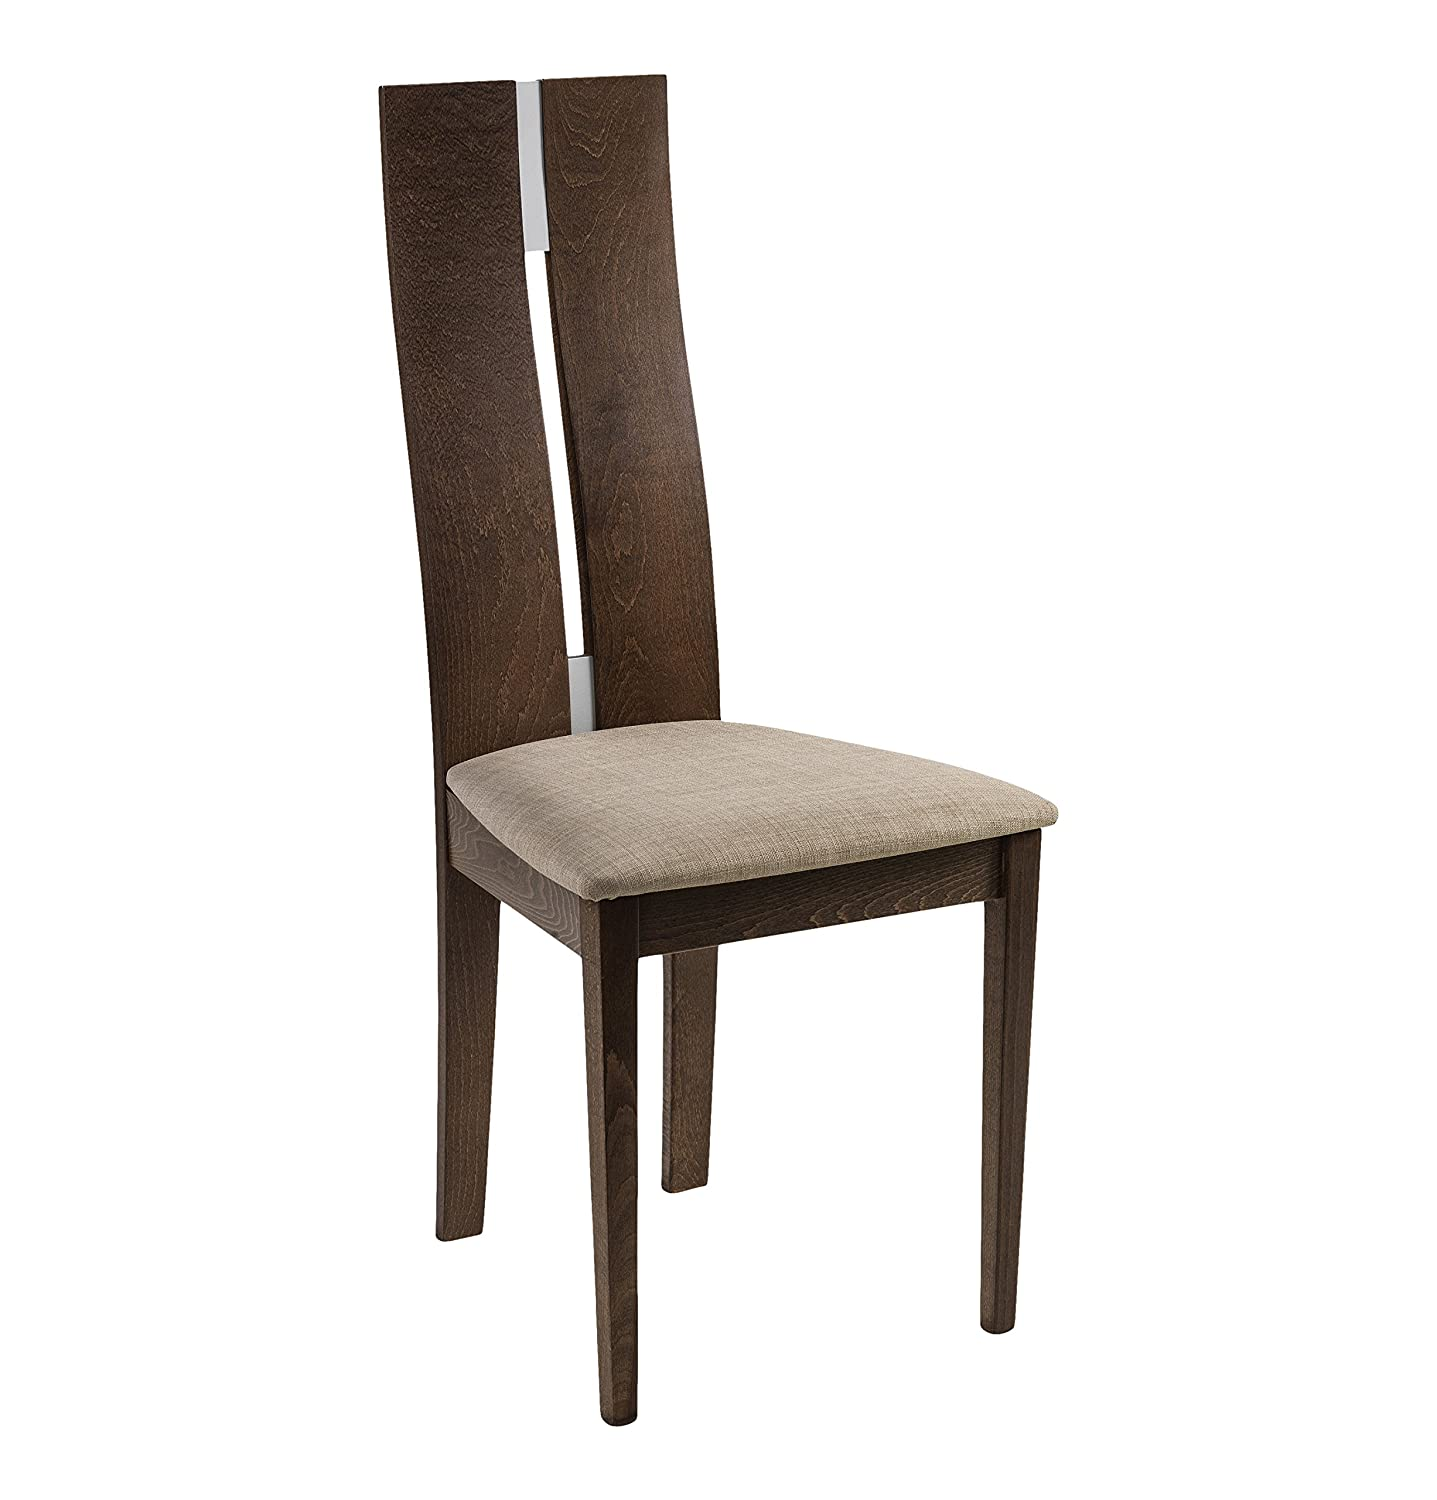 Julian Bowen Cayman Dining Chair Walnut Finish Set of 2 Amazon